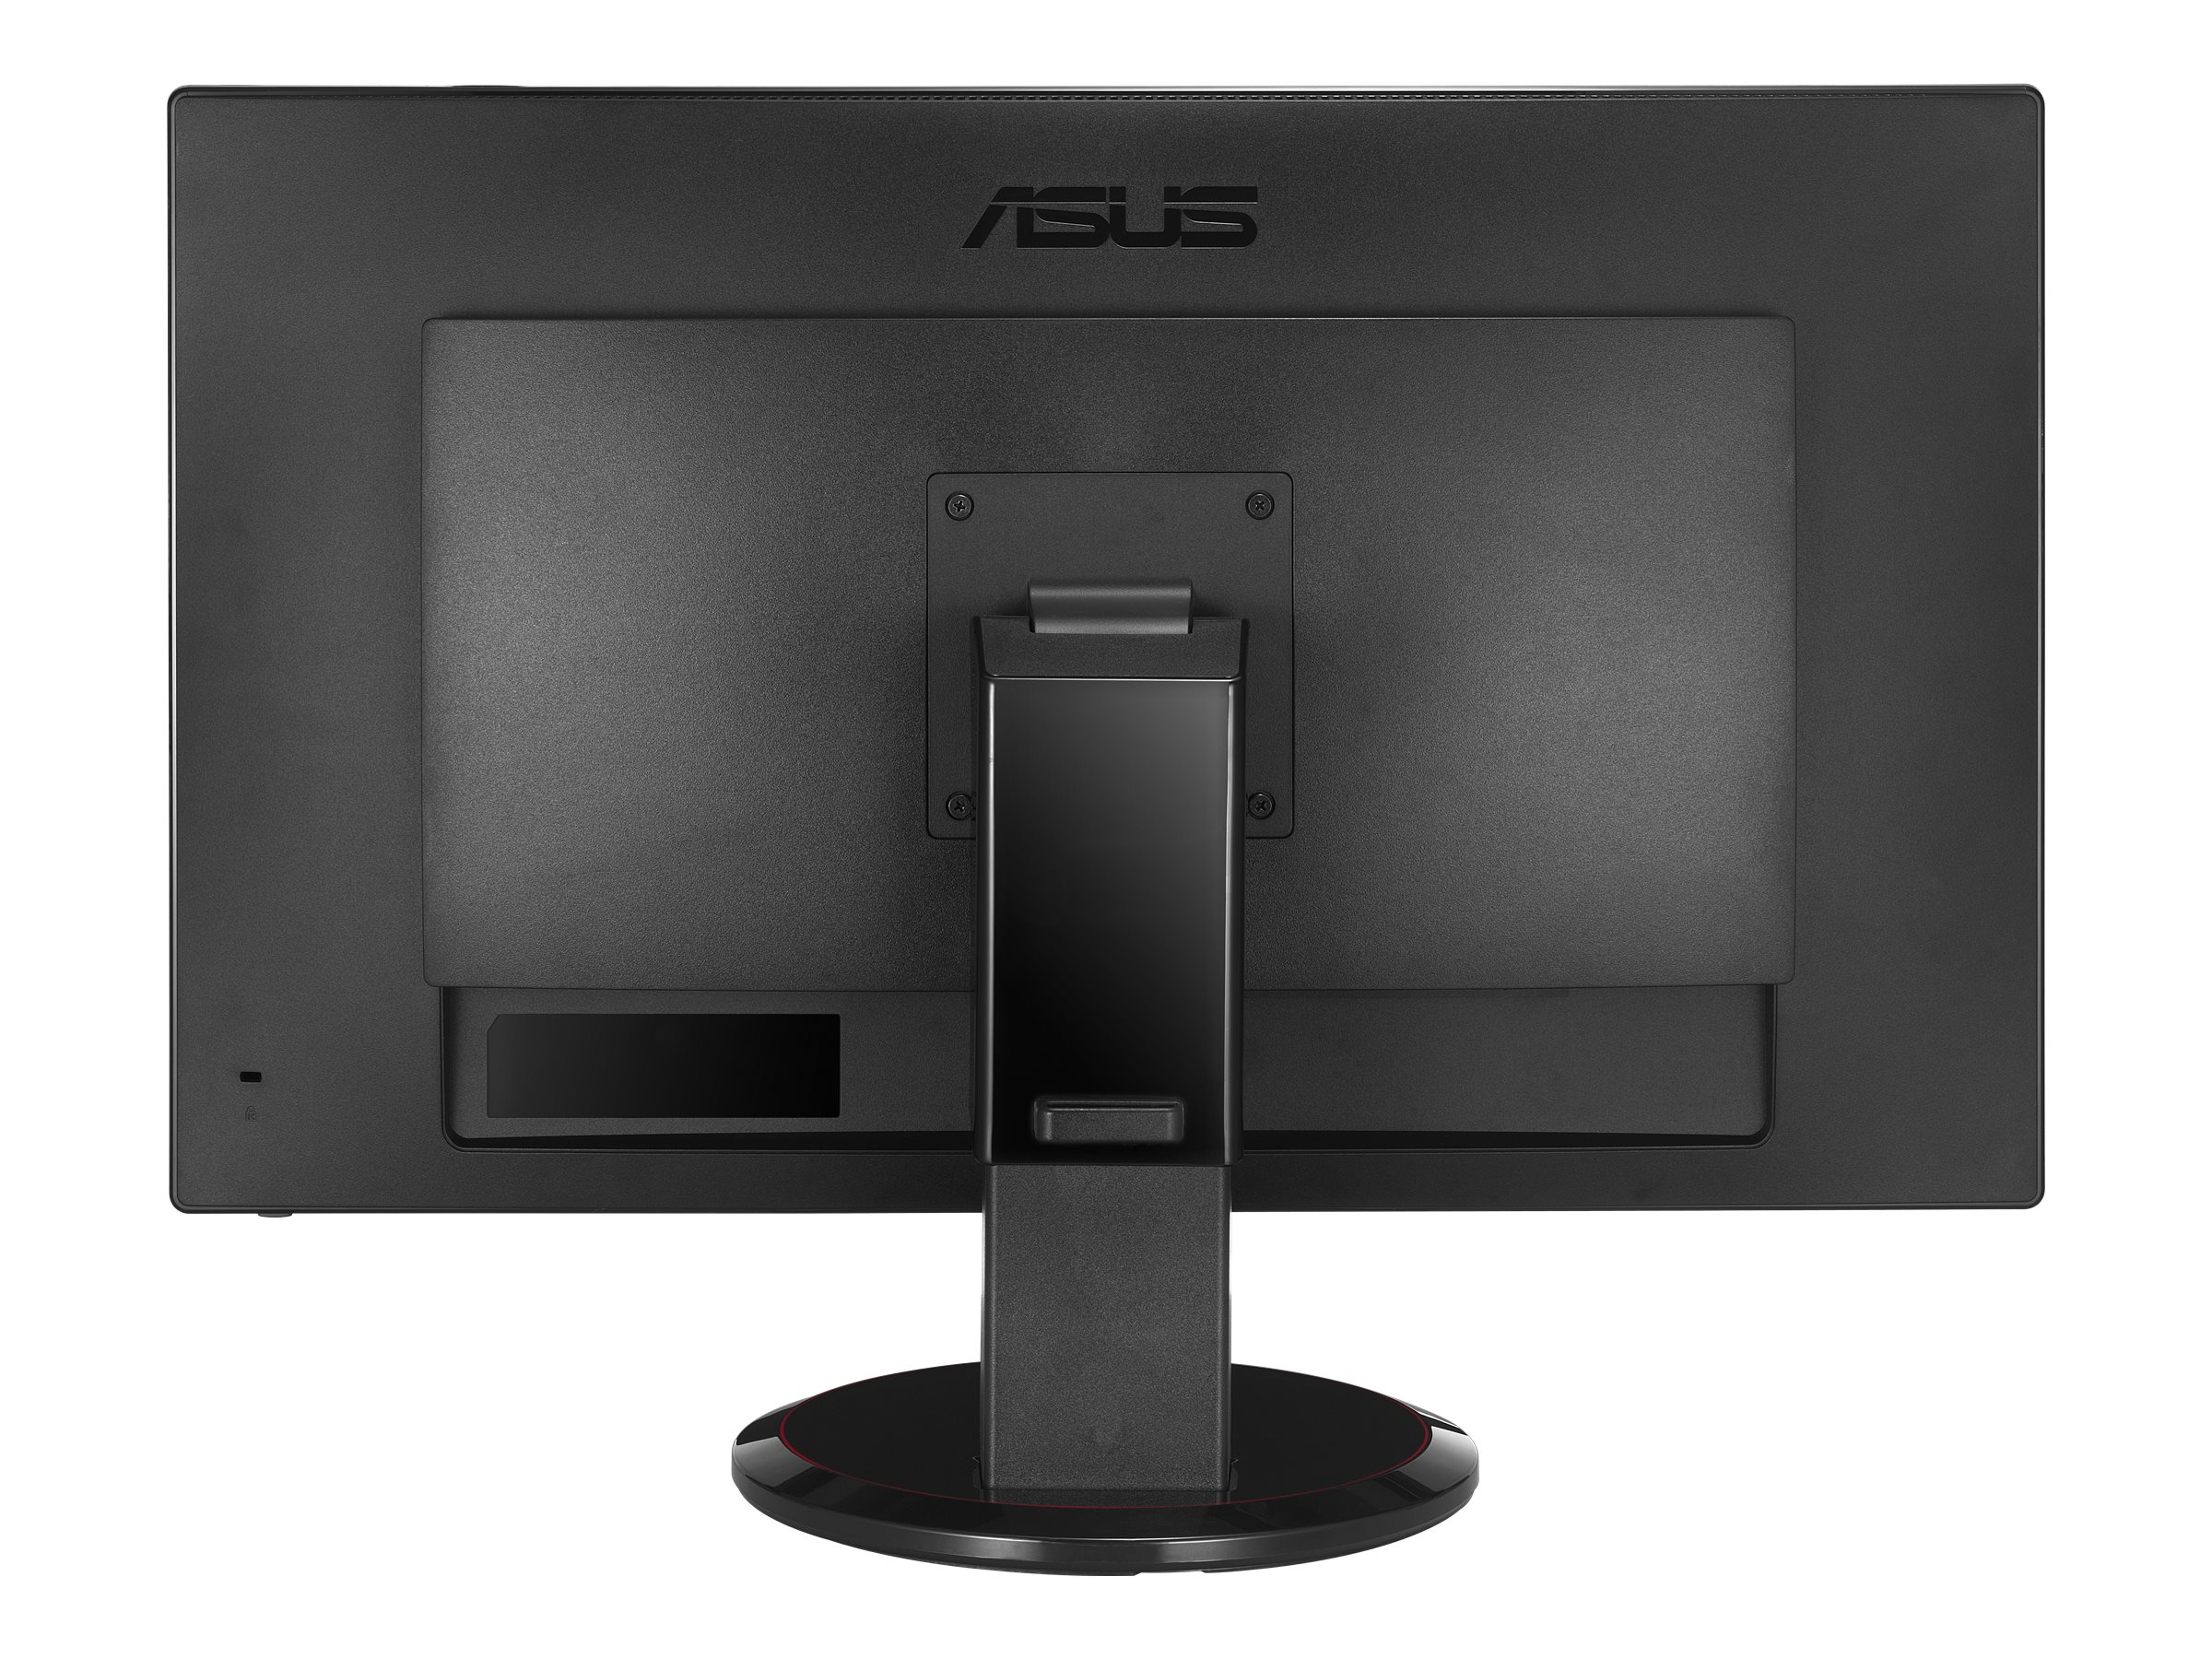 Asus 27 VG278HV Full HD LED-LCD Monitor, Black, VG278HV